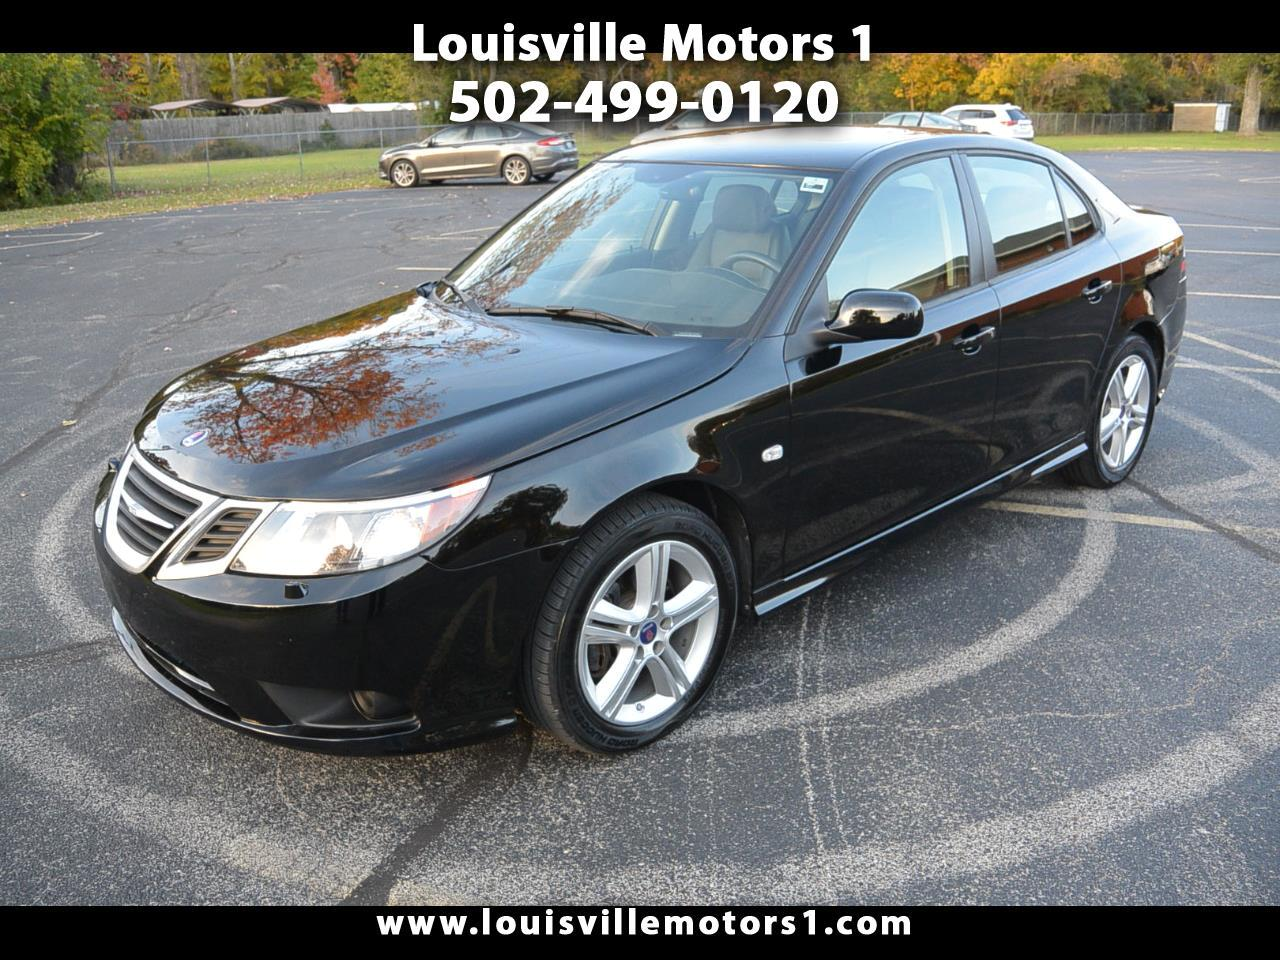 2011 Saab 9-3 4dr Sdn XWD *Ltd Avail*